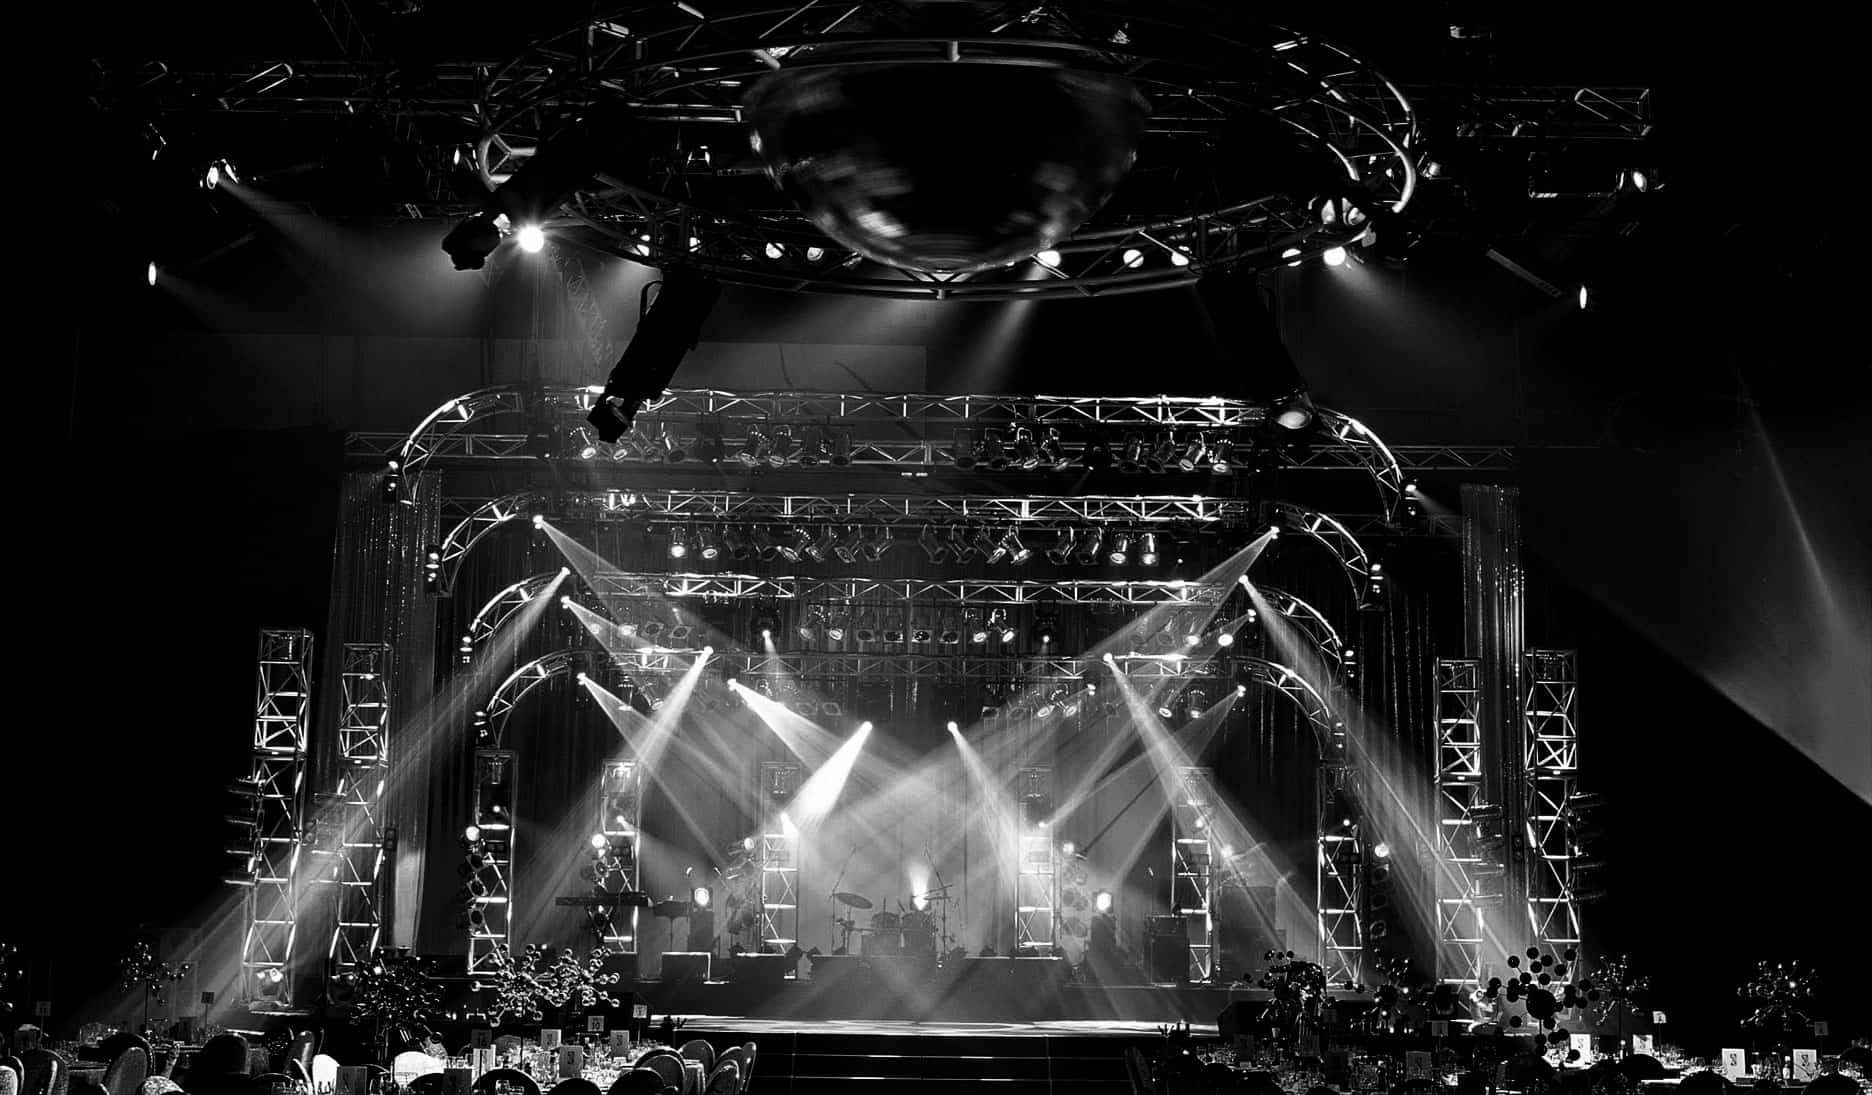 Concert, Mac Aura, Audio Visual Production, AV Production, Truss, Moving Heads, Martin MH3 Beam, LED Screen, Line Array